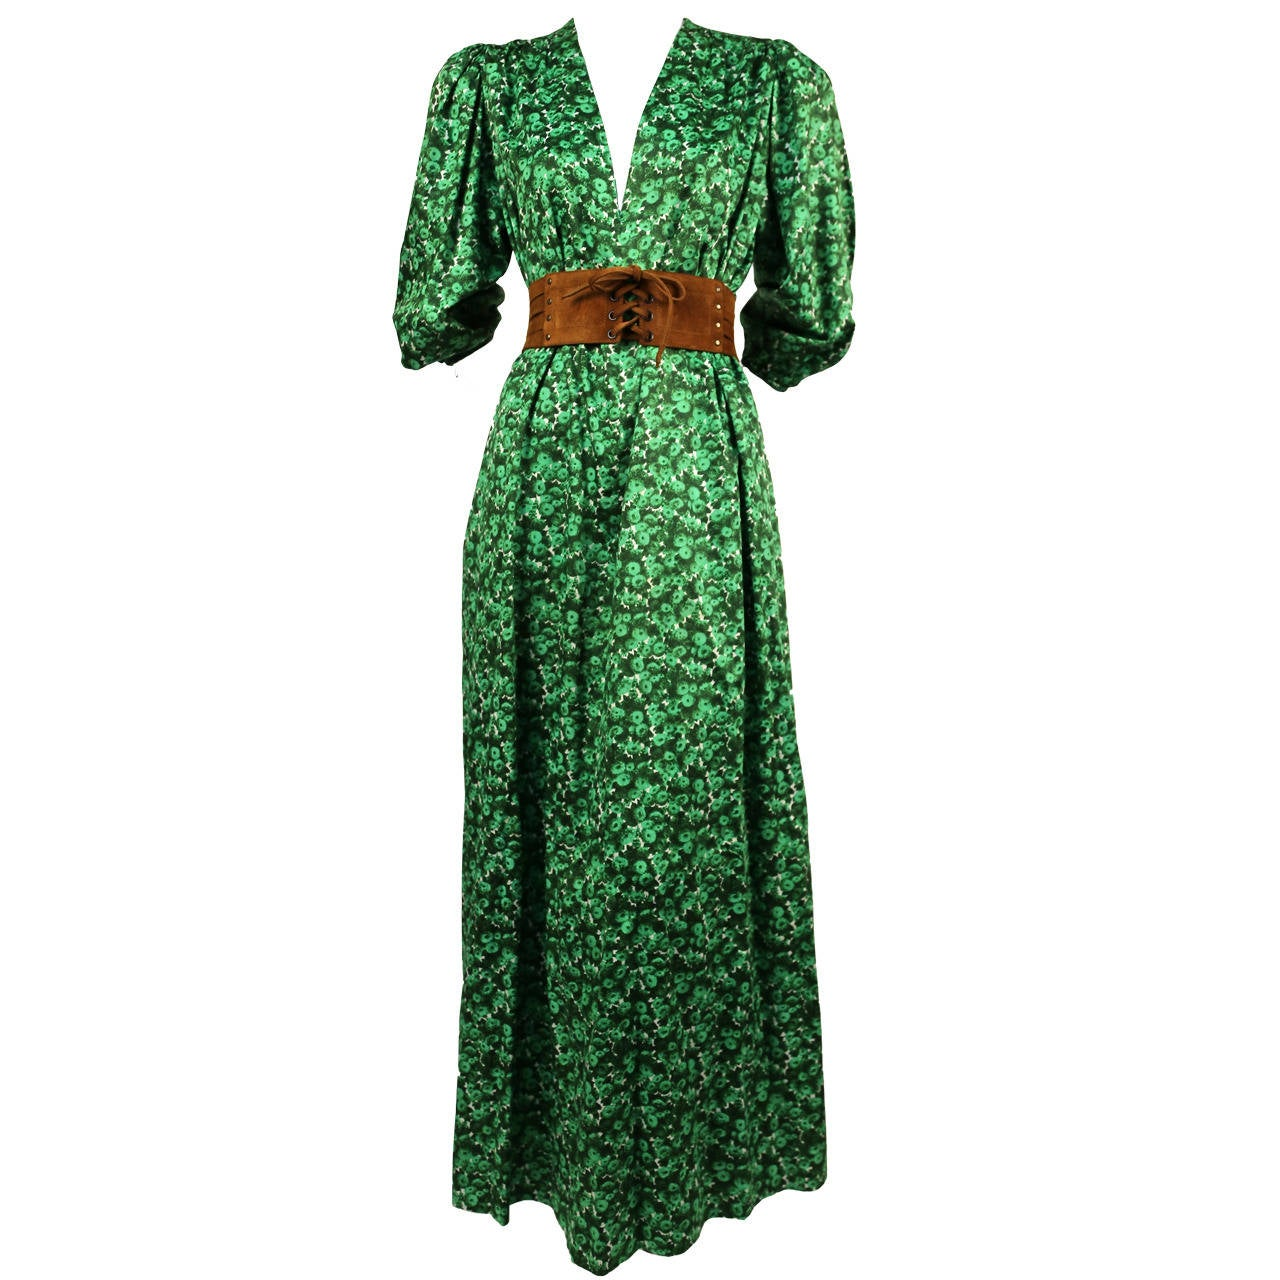 1970's YVES SAINT LAURENT green floral cotton dress with deep V neckline 1